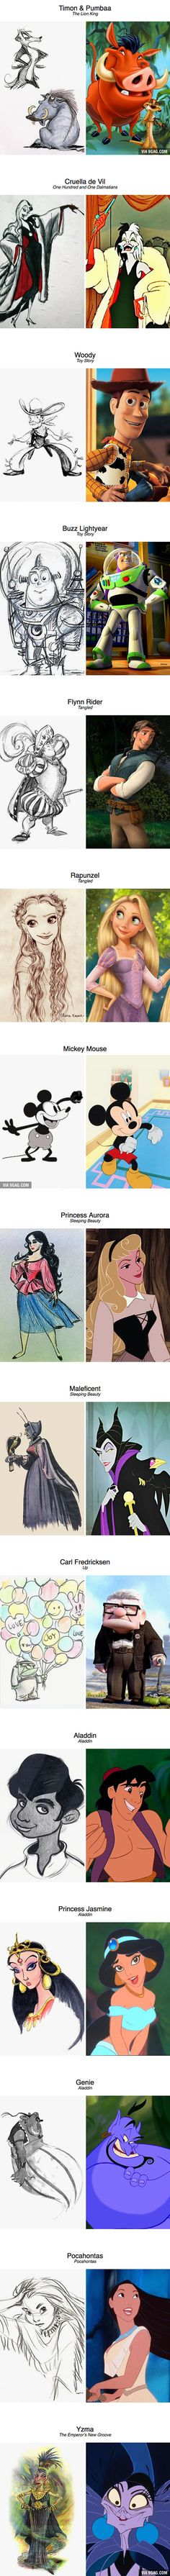 best funny disney characters images on pinterest disney films